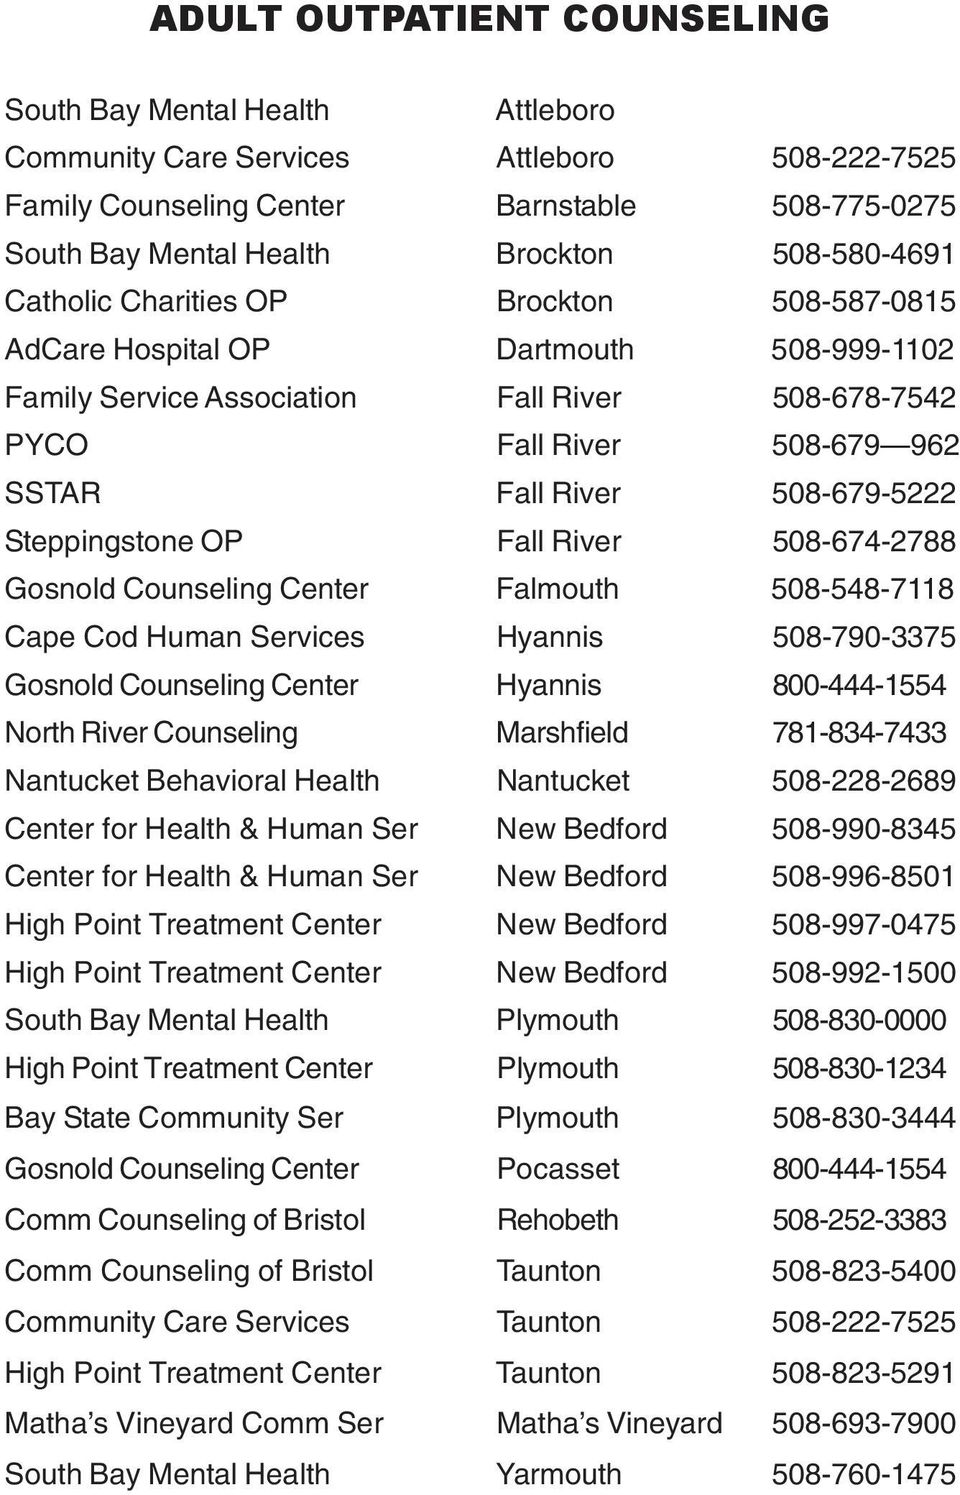 508-679-5222 Steppingstone OP Fall River 508-674-2788 Gosnold Counseling Center Falmouth 508-548-7118 Cape Cod Human Services Hyannis 508-790-3375 Gosnold Counseling Center Hyannis 800-444-1554 North